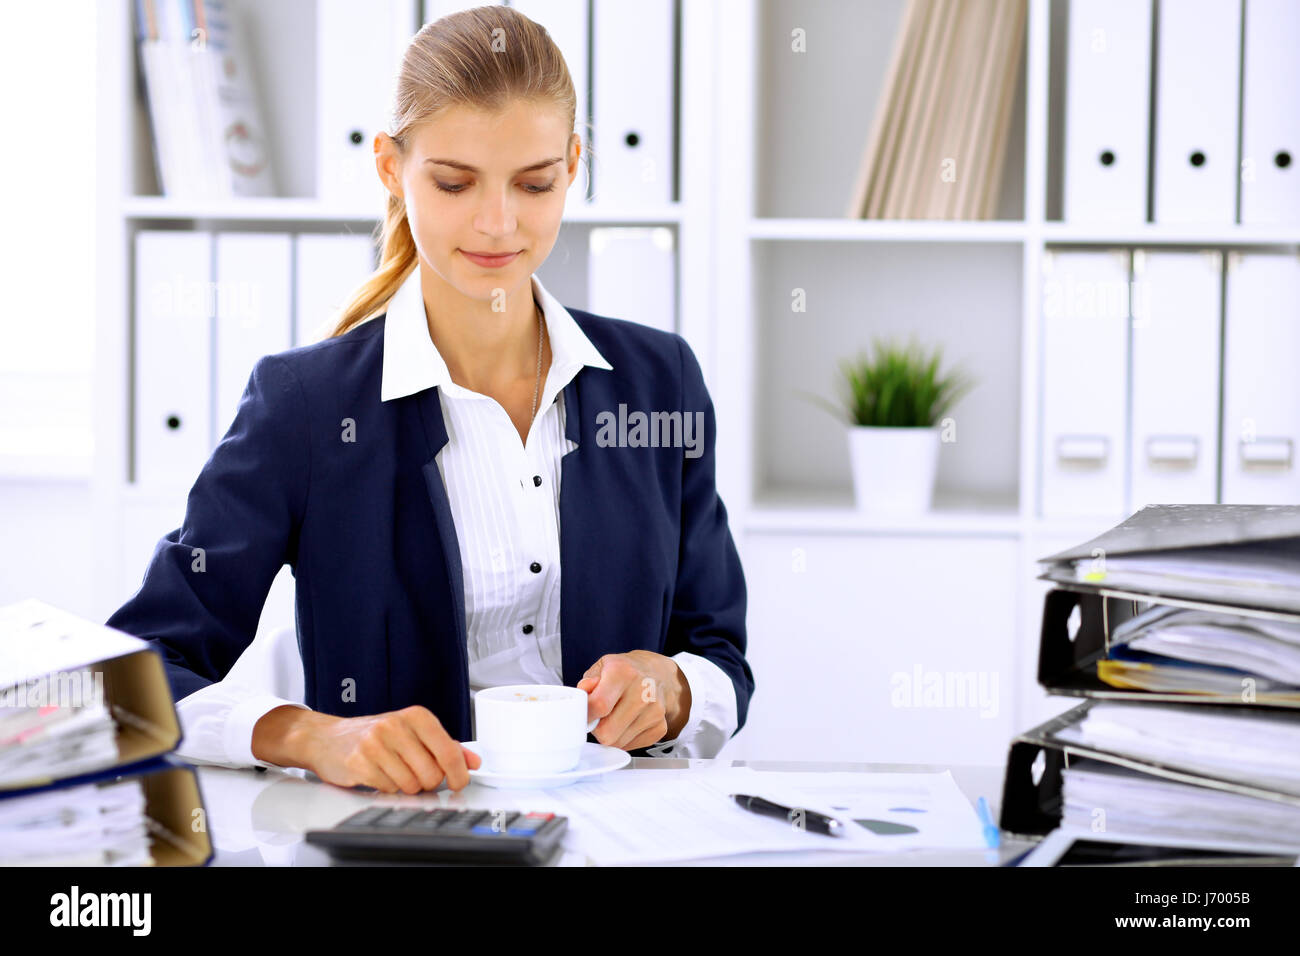 Happy business woman or female accountant having some minutes for coffee and pleasure at working place - Stock Image